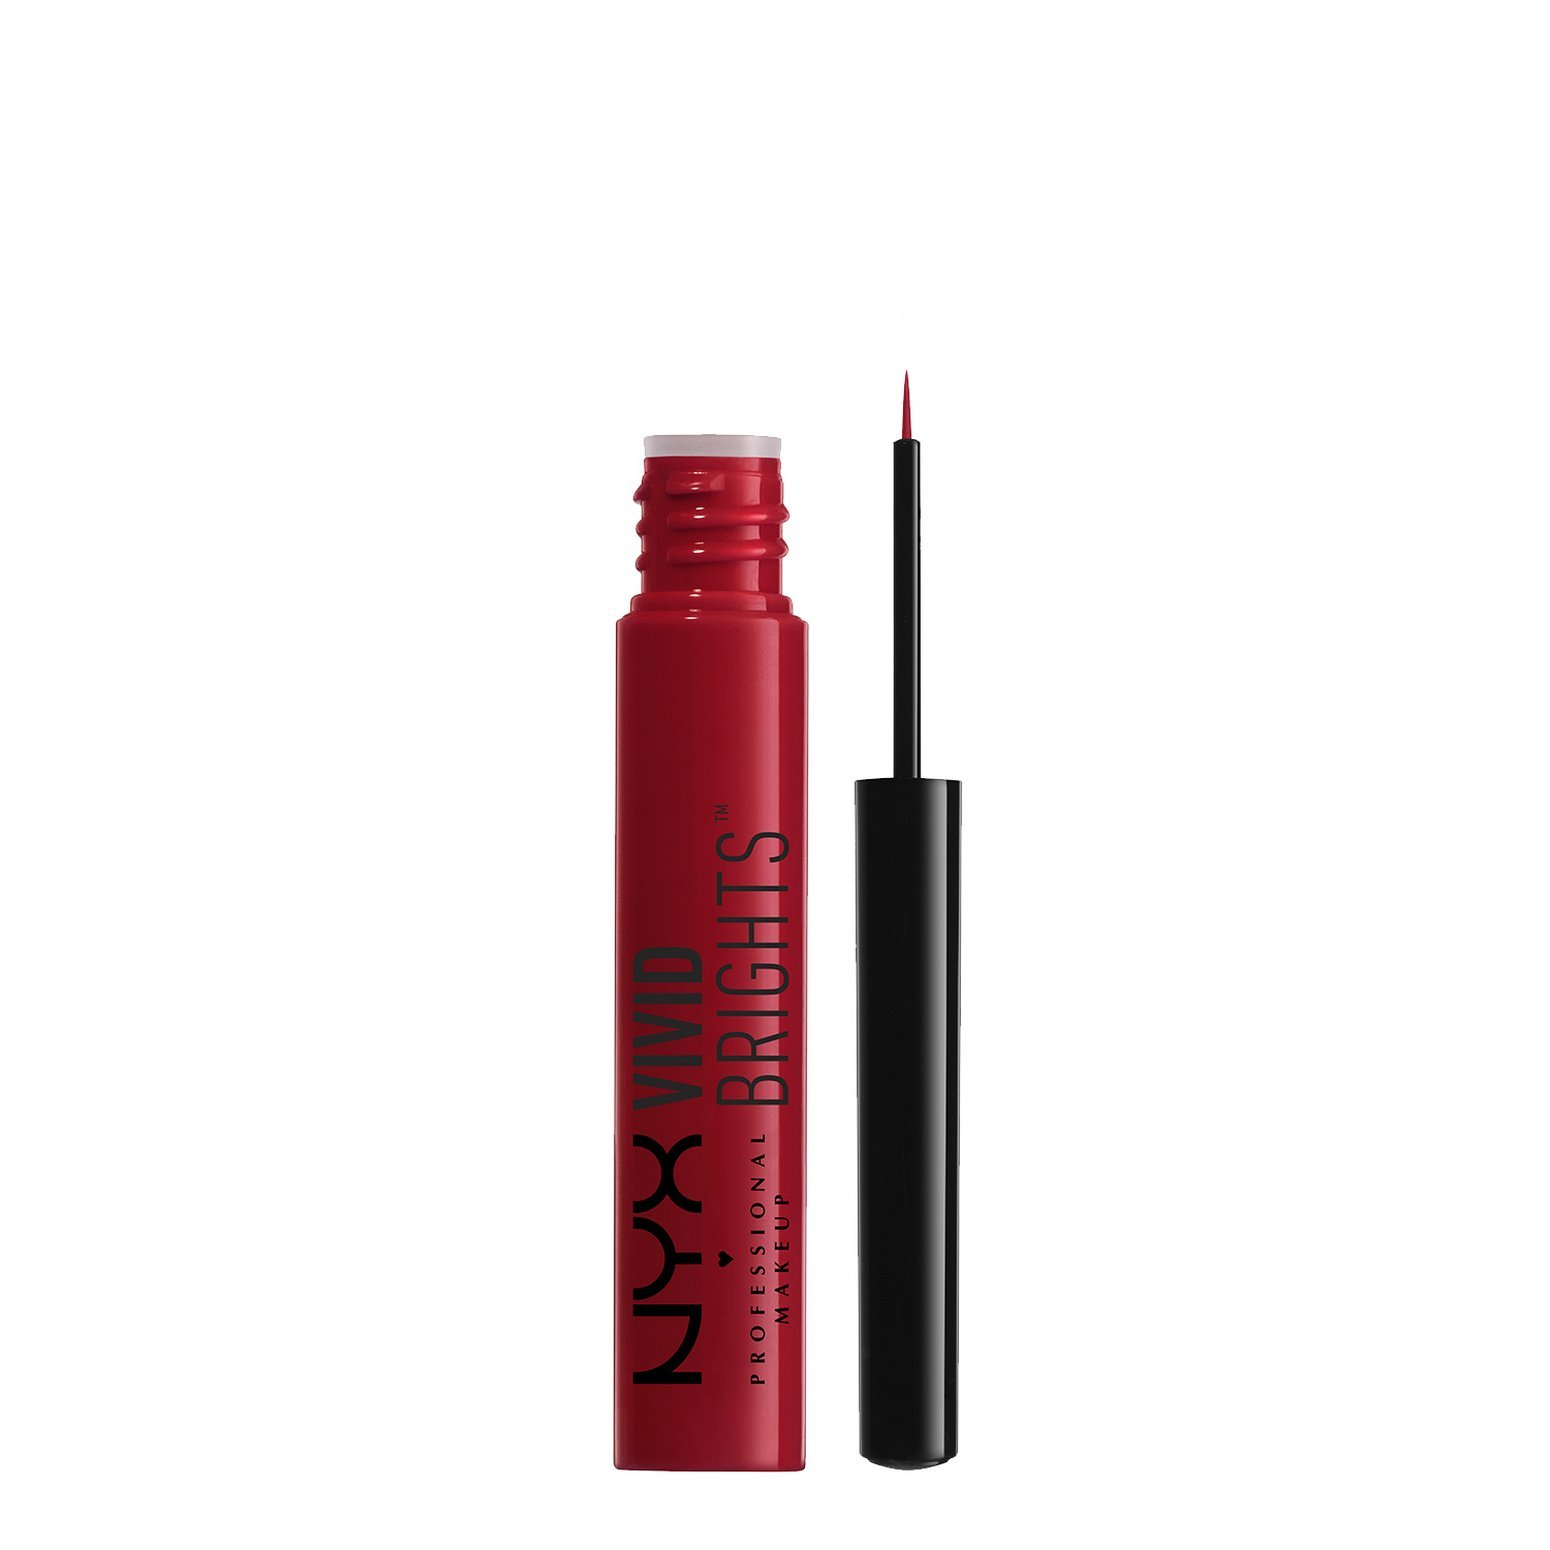 NYX PROFESSIONAL MAKEUP Vivid Brights Liner, Fire, 0.068 Fluid Ounce